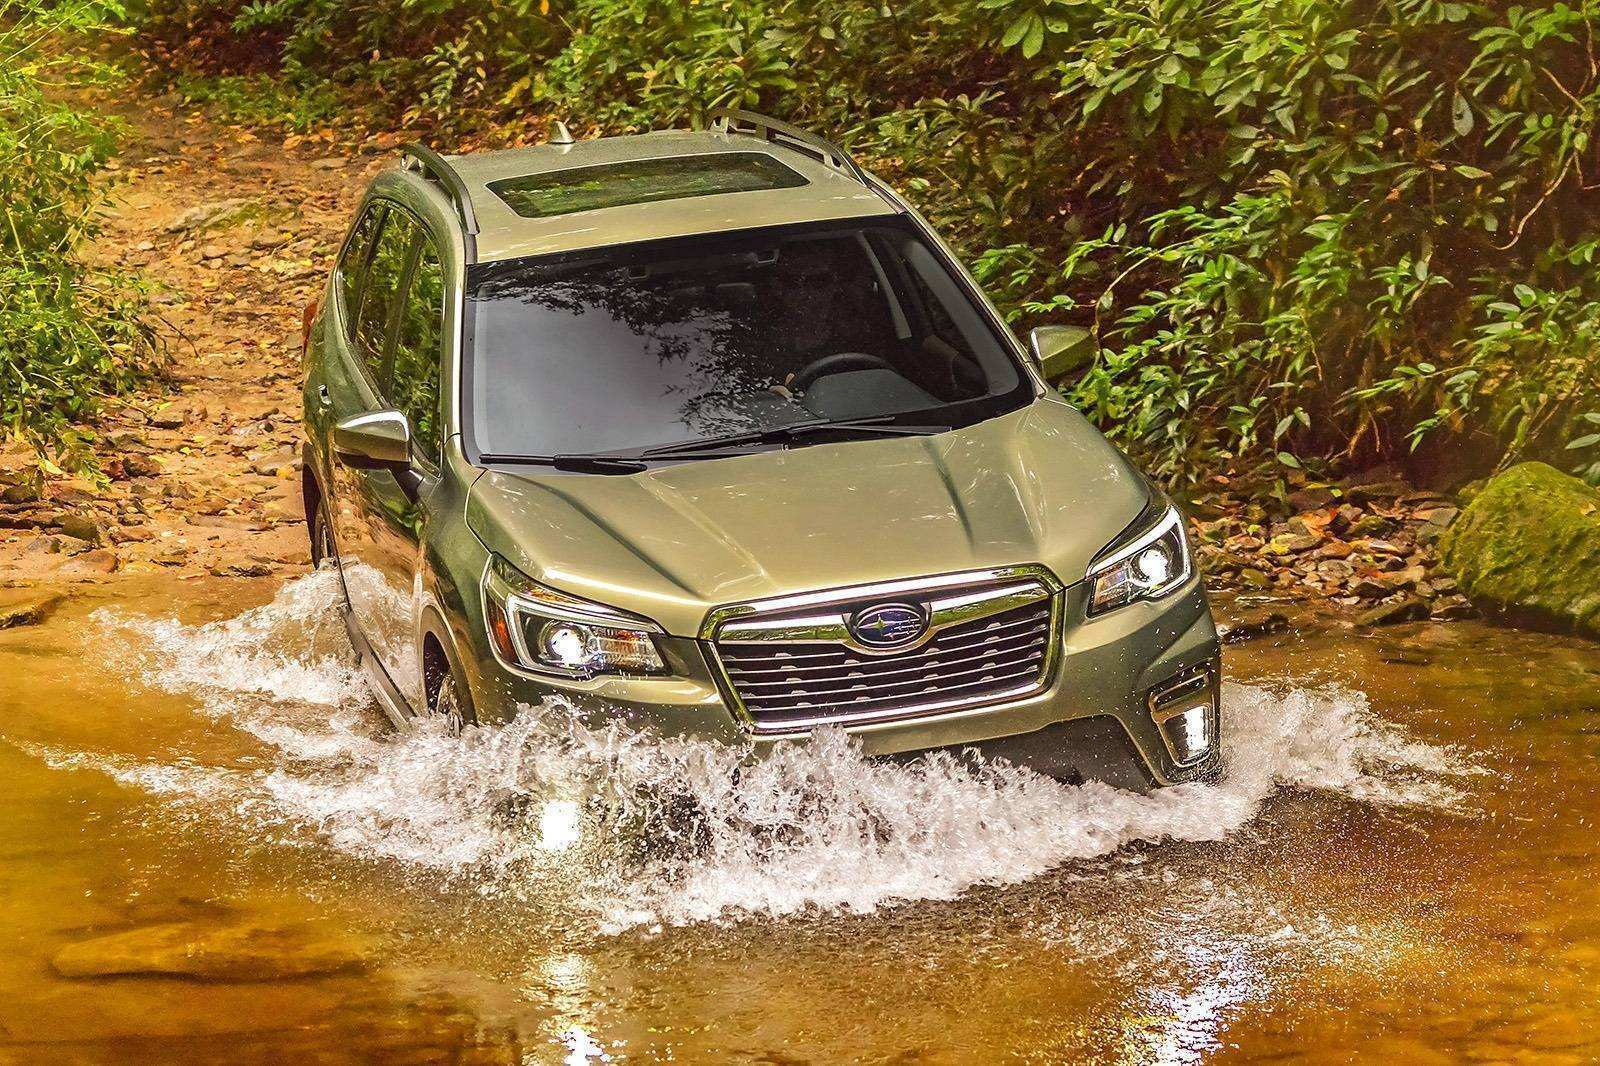 24 All New 2019 Subaru Forester Mpg Release Date And Concept